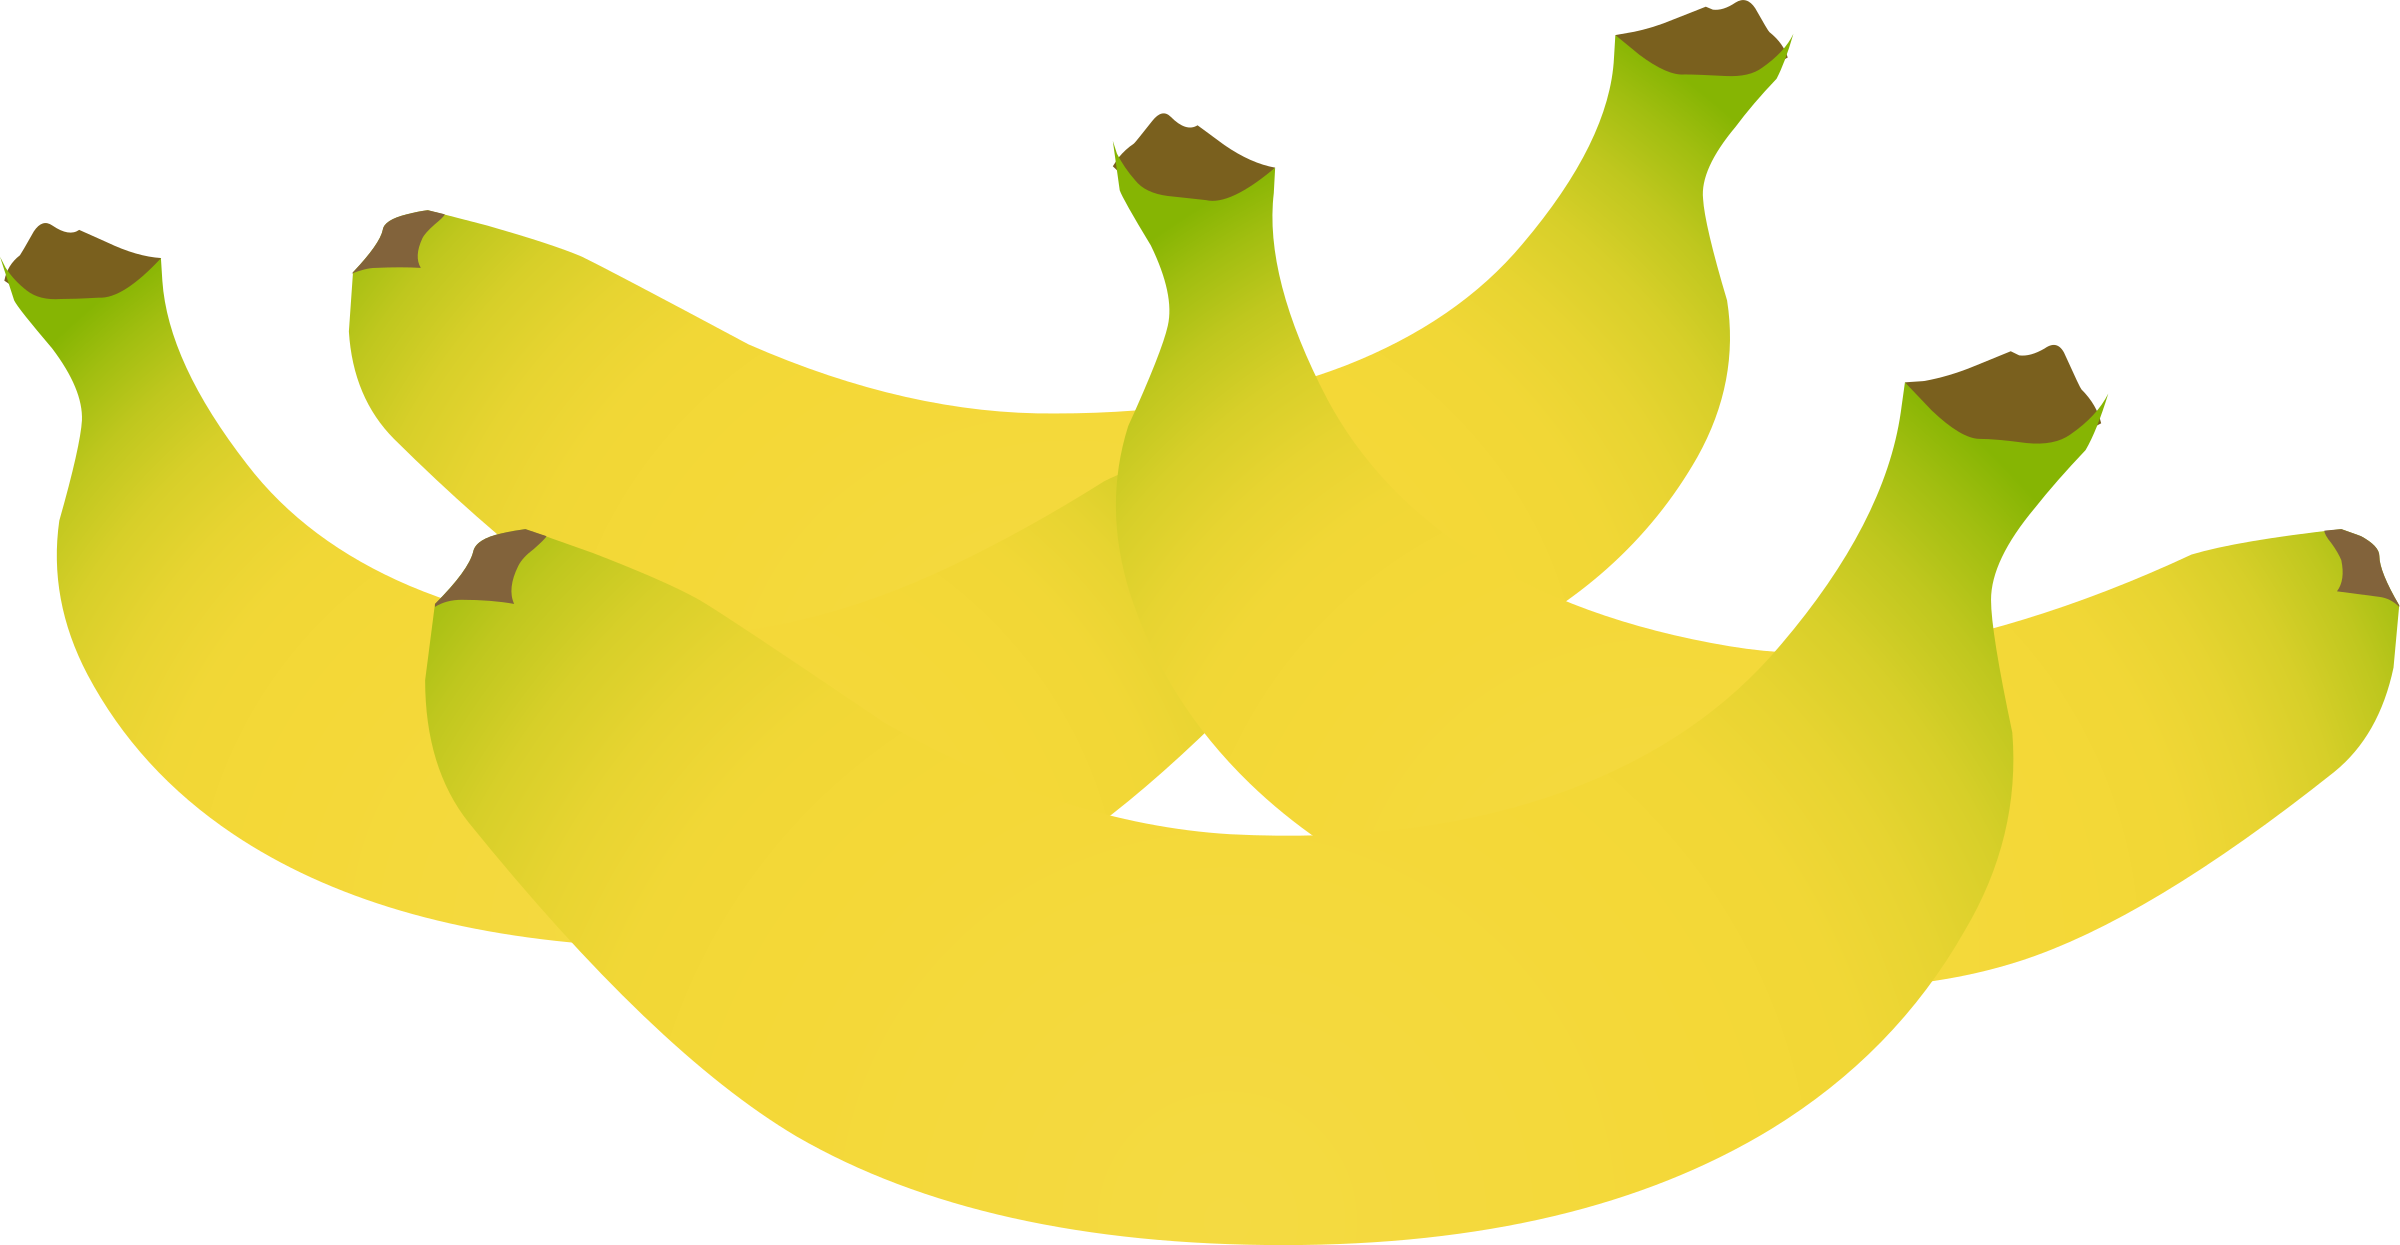 Food Banana by glitch